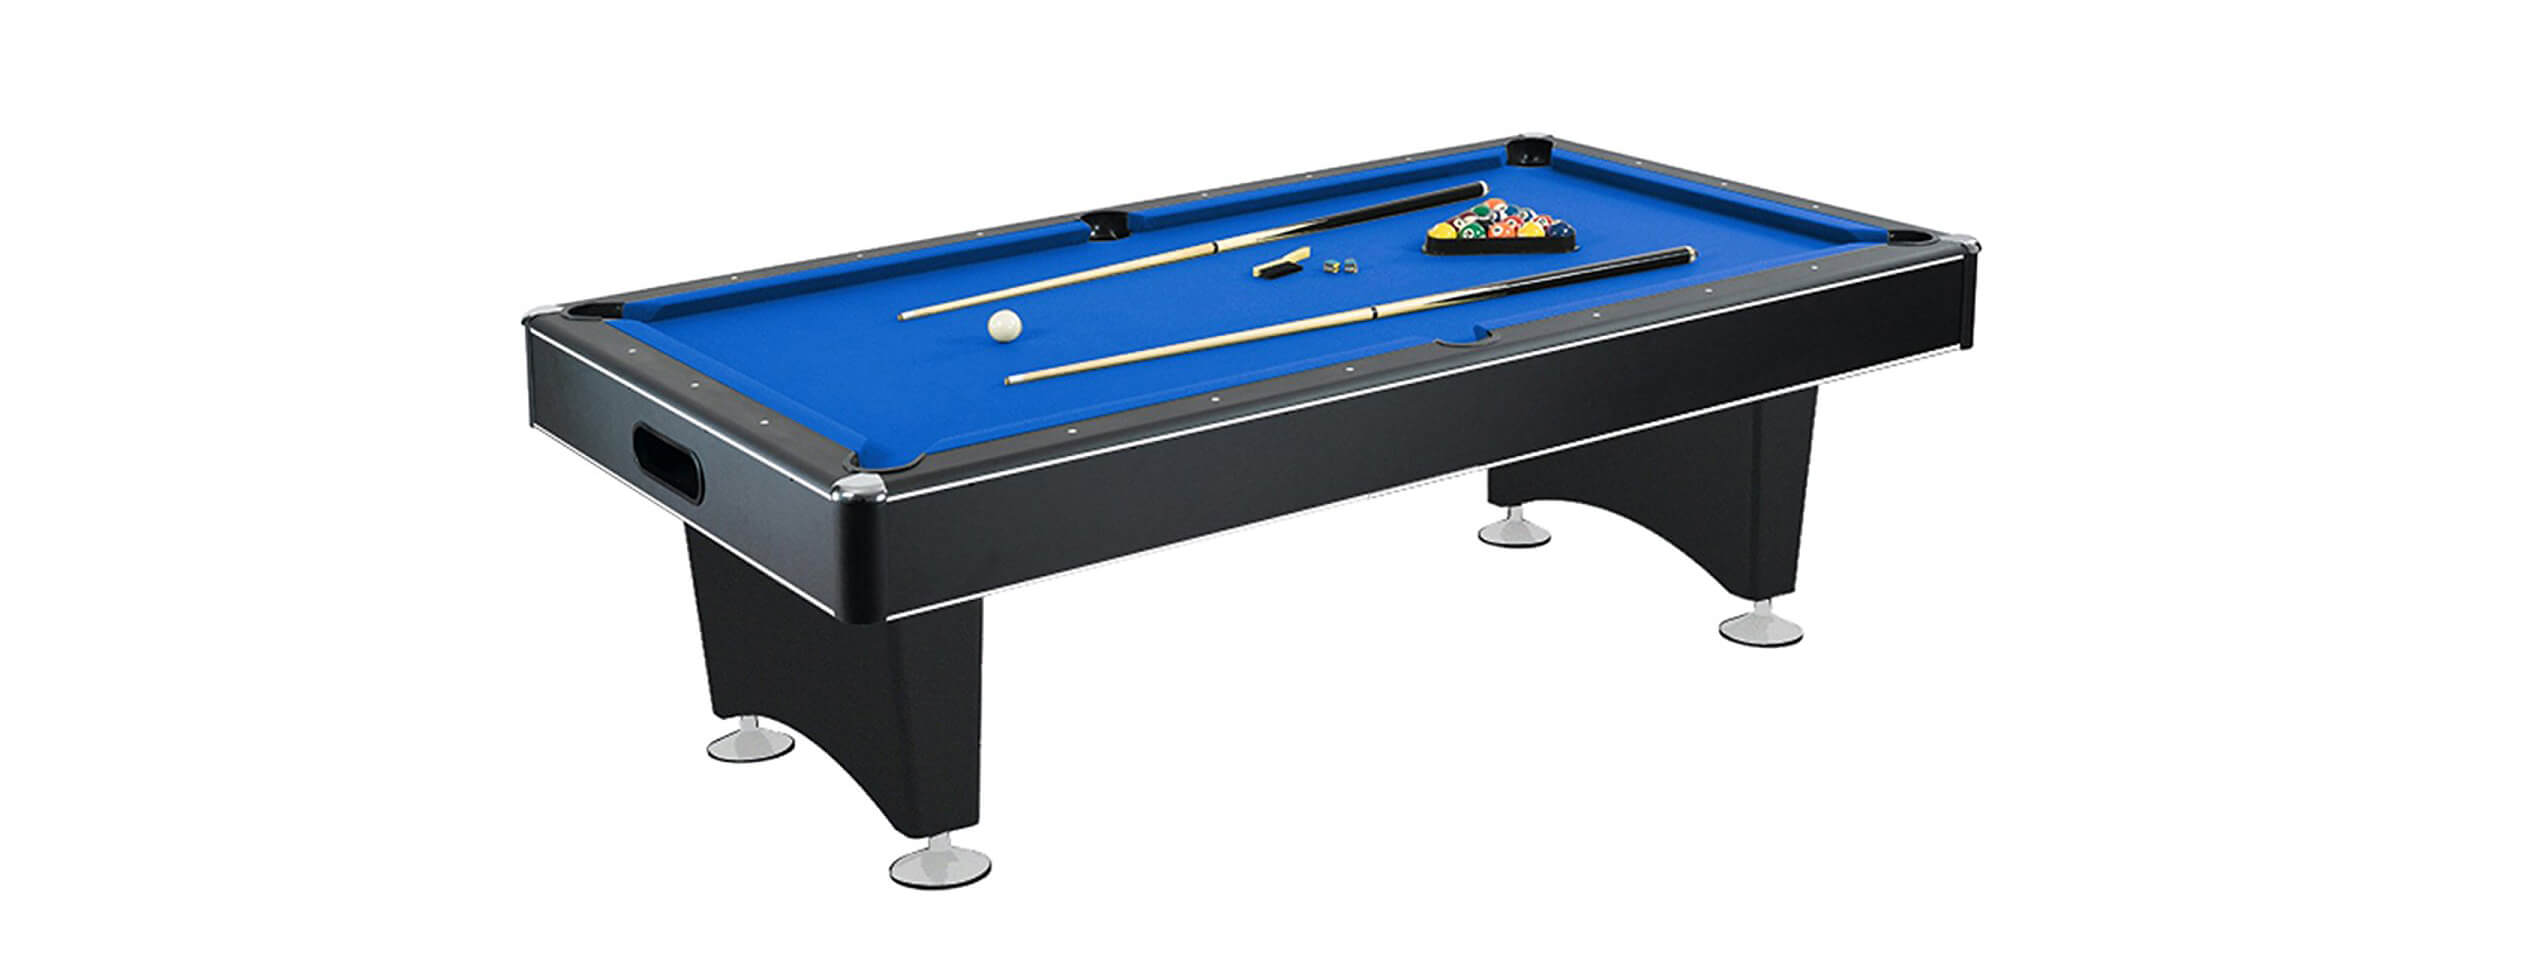 Hathaway Hustler 7'-8' Pool Table with Blue Felt